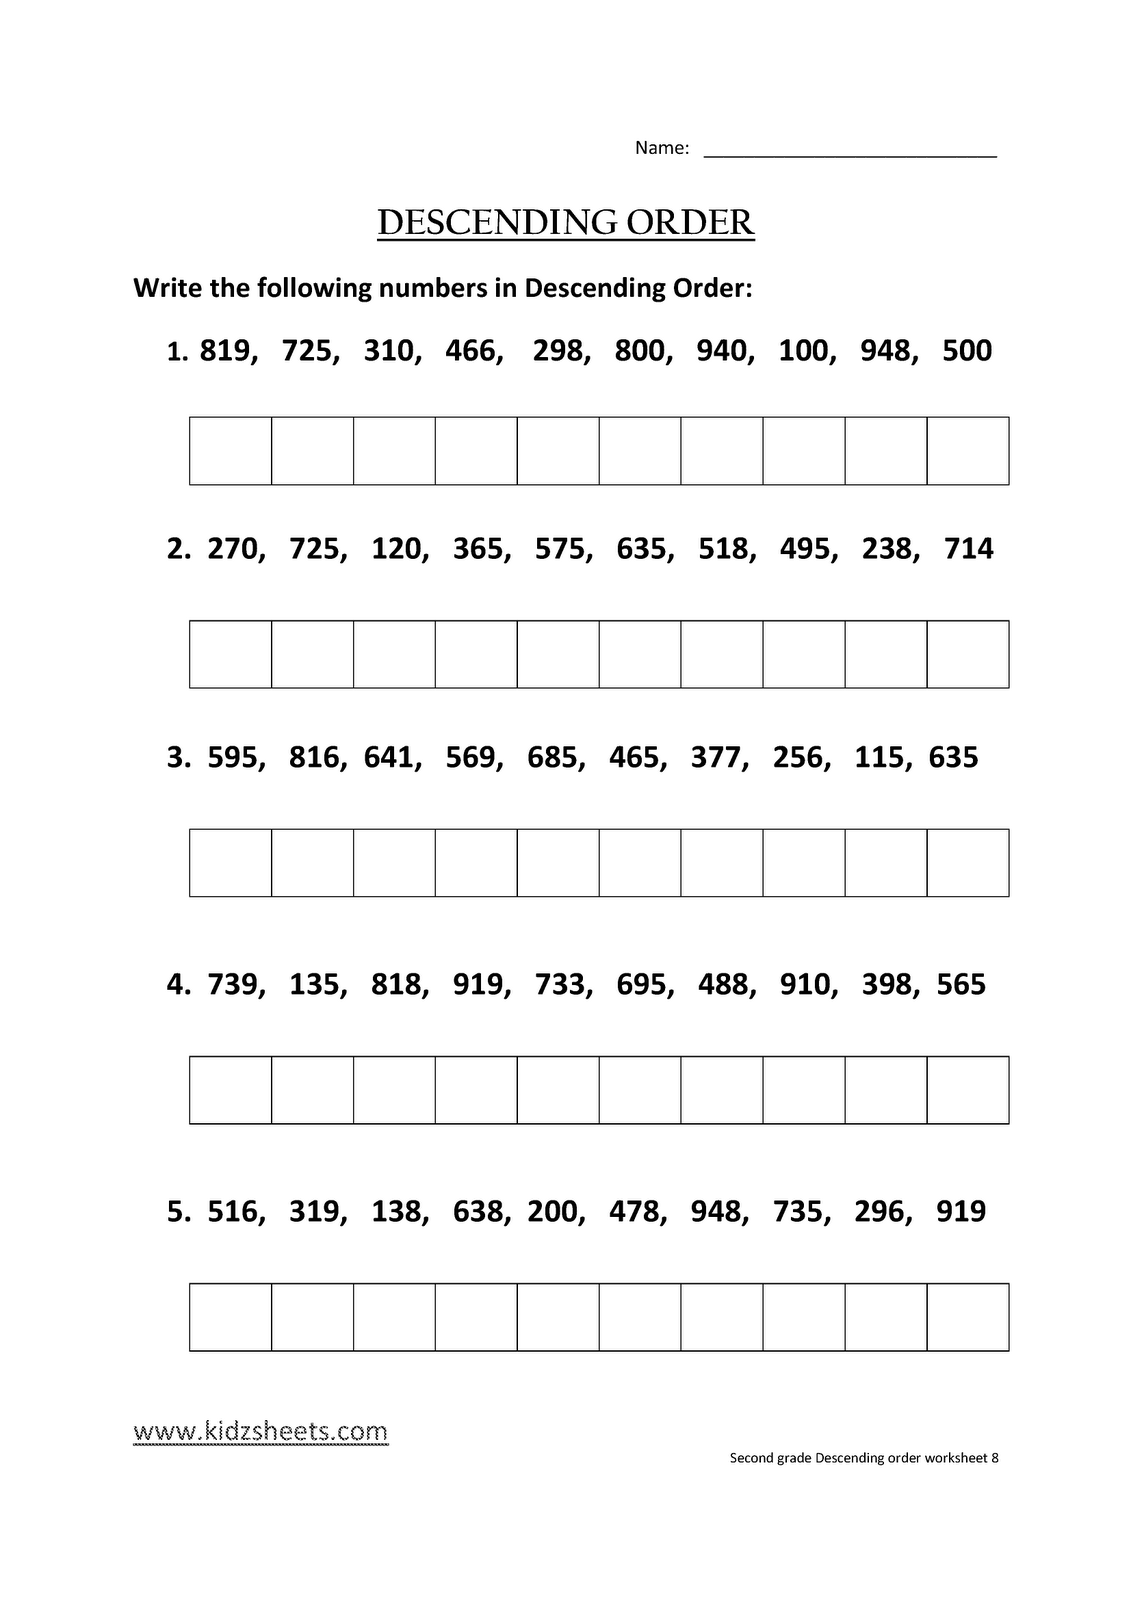 Kidz Worksheets Second Grade Descending Order Worksheet8